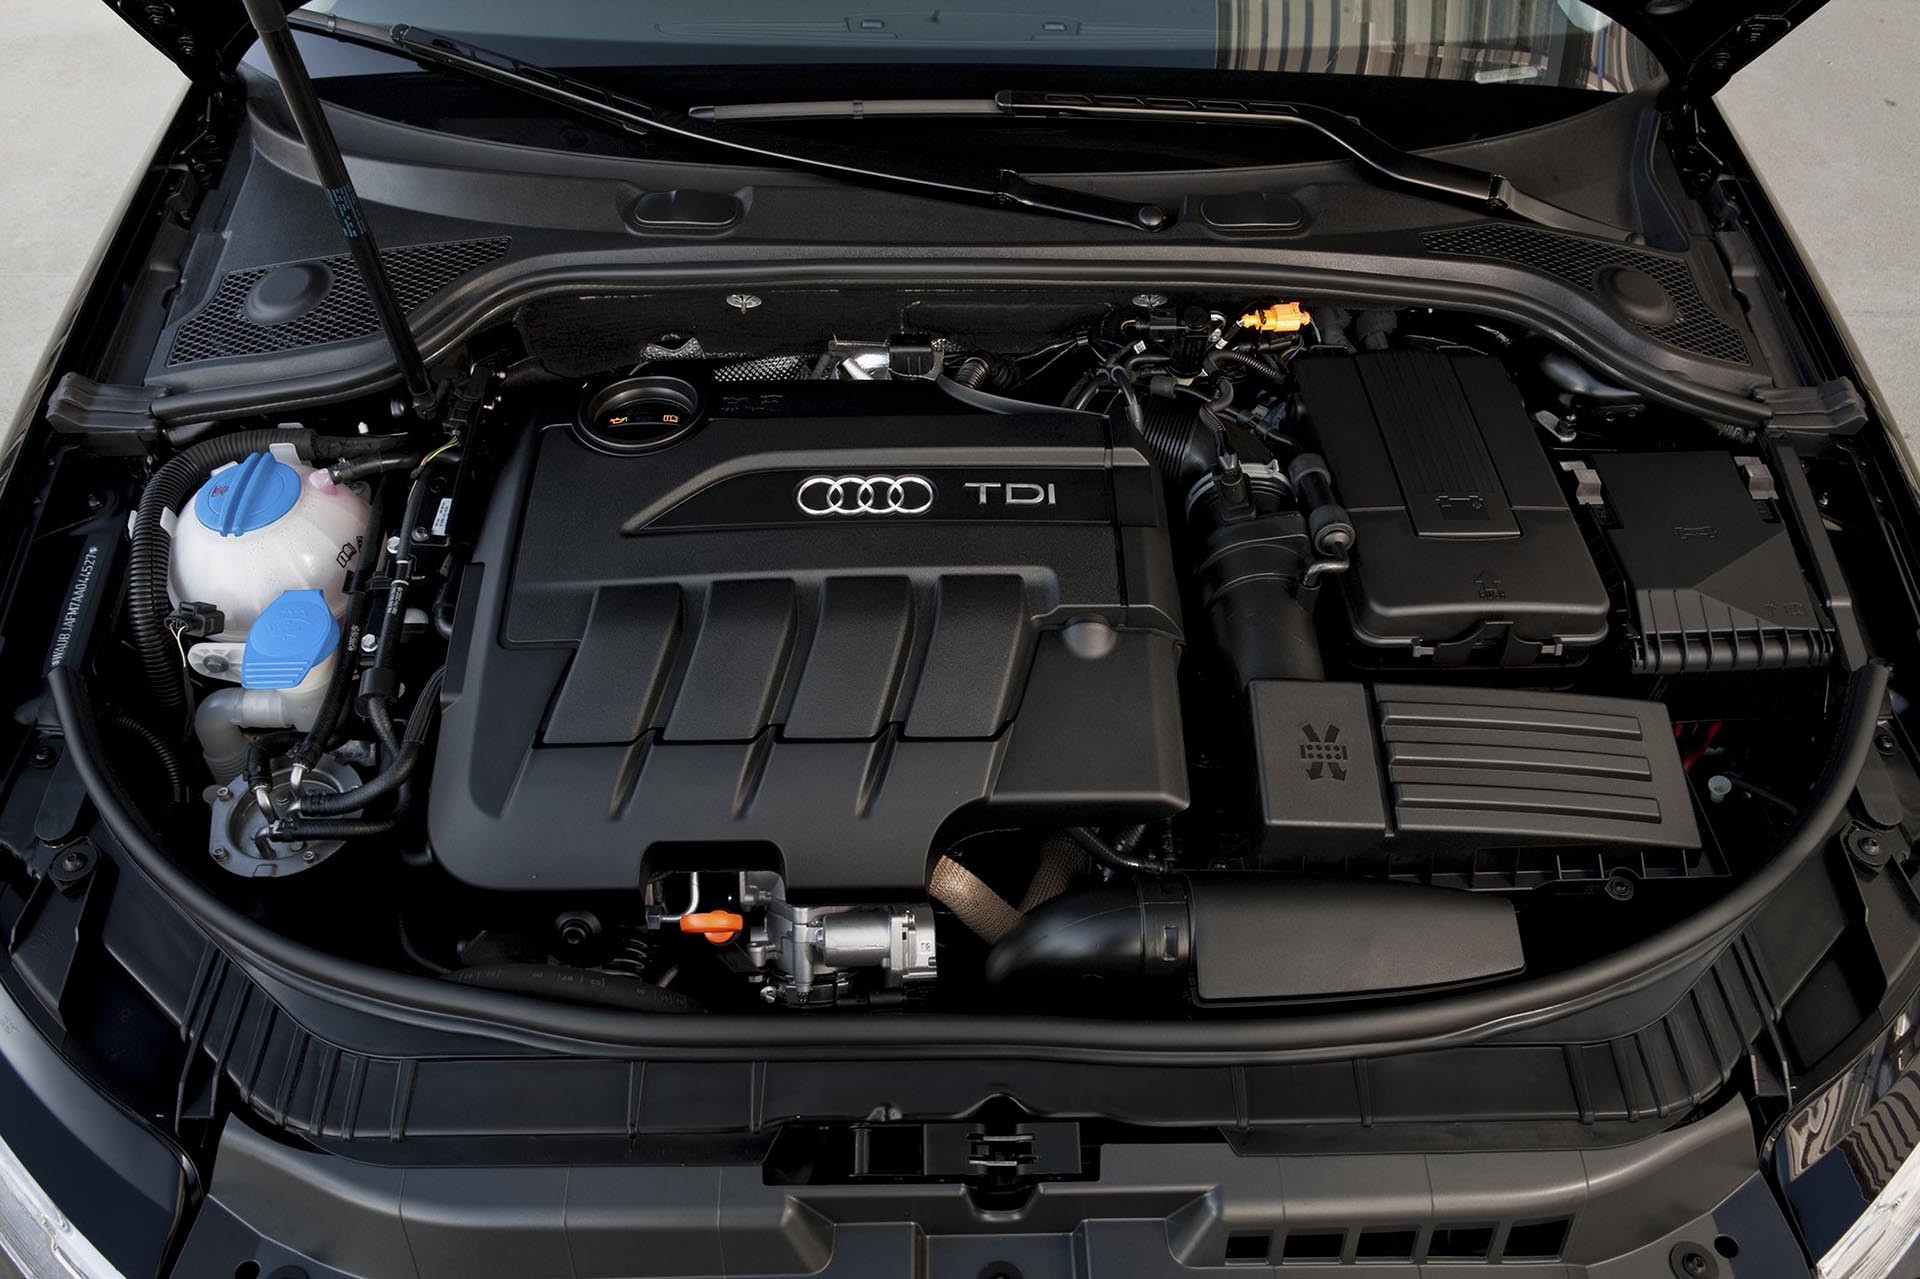 04_Audi A3 2.0 TDI engine